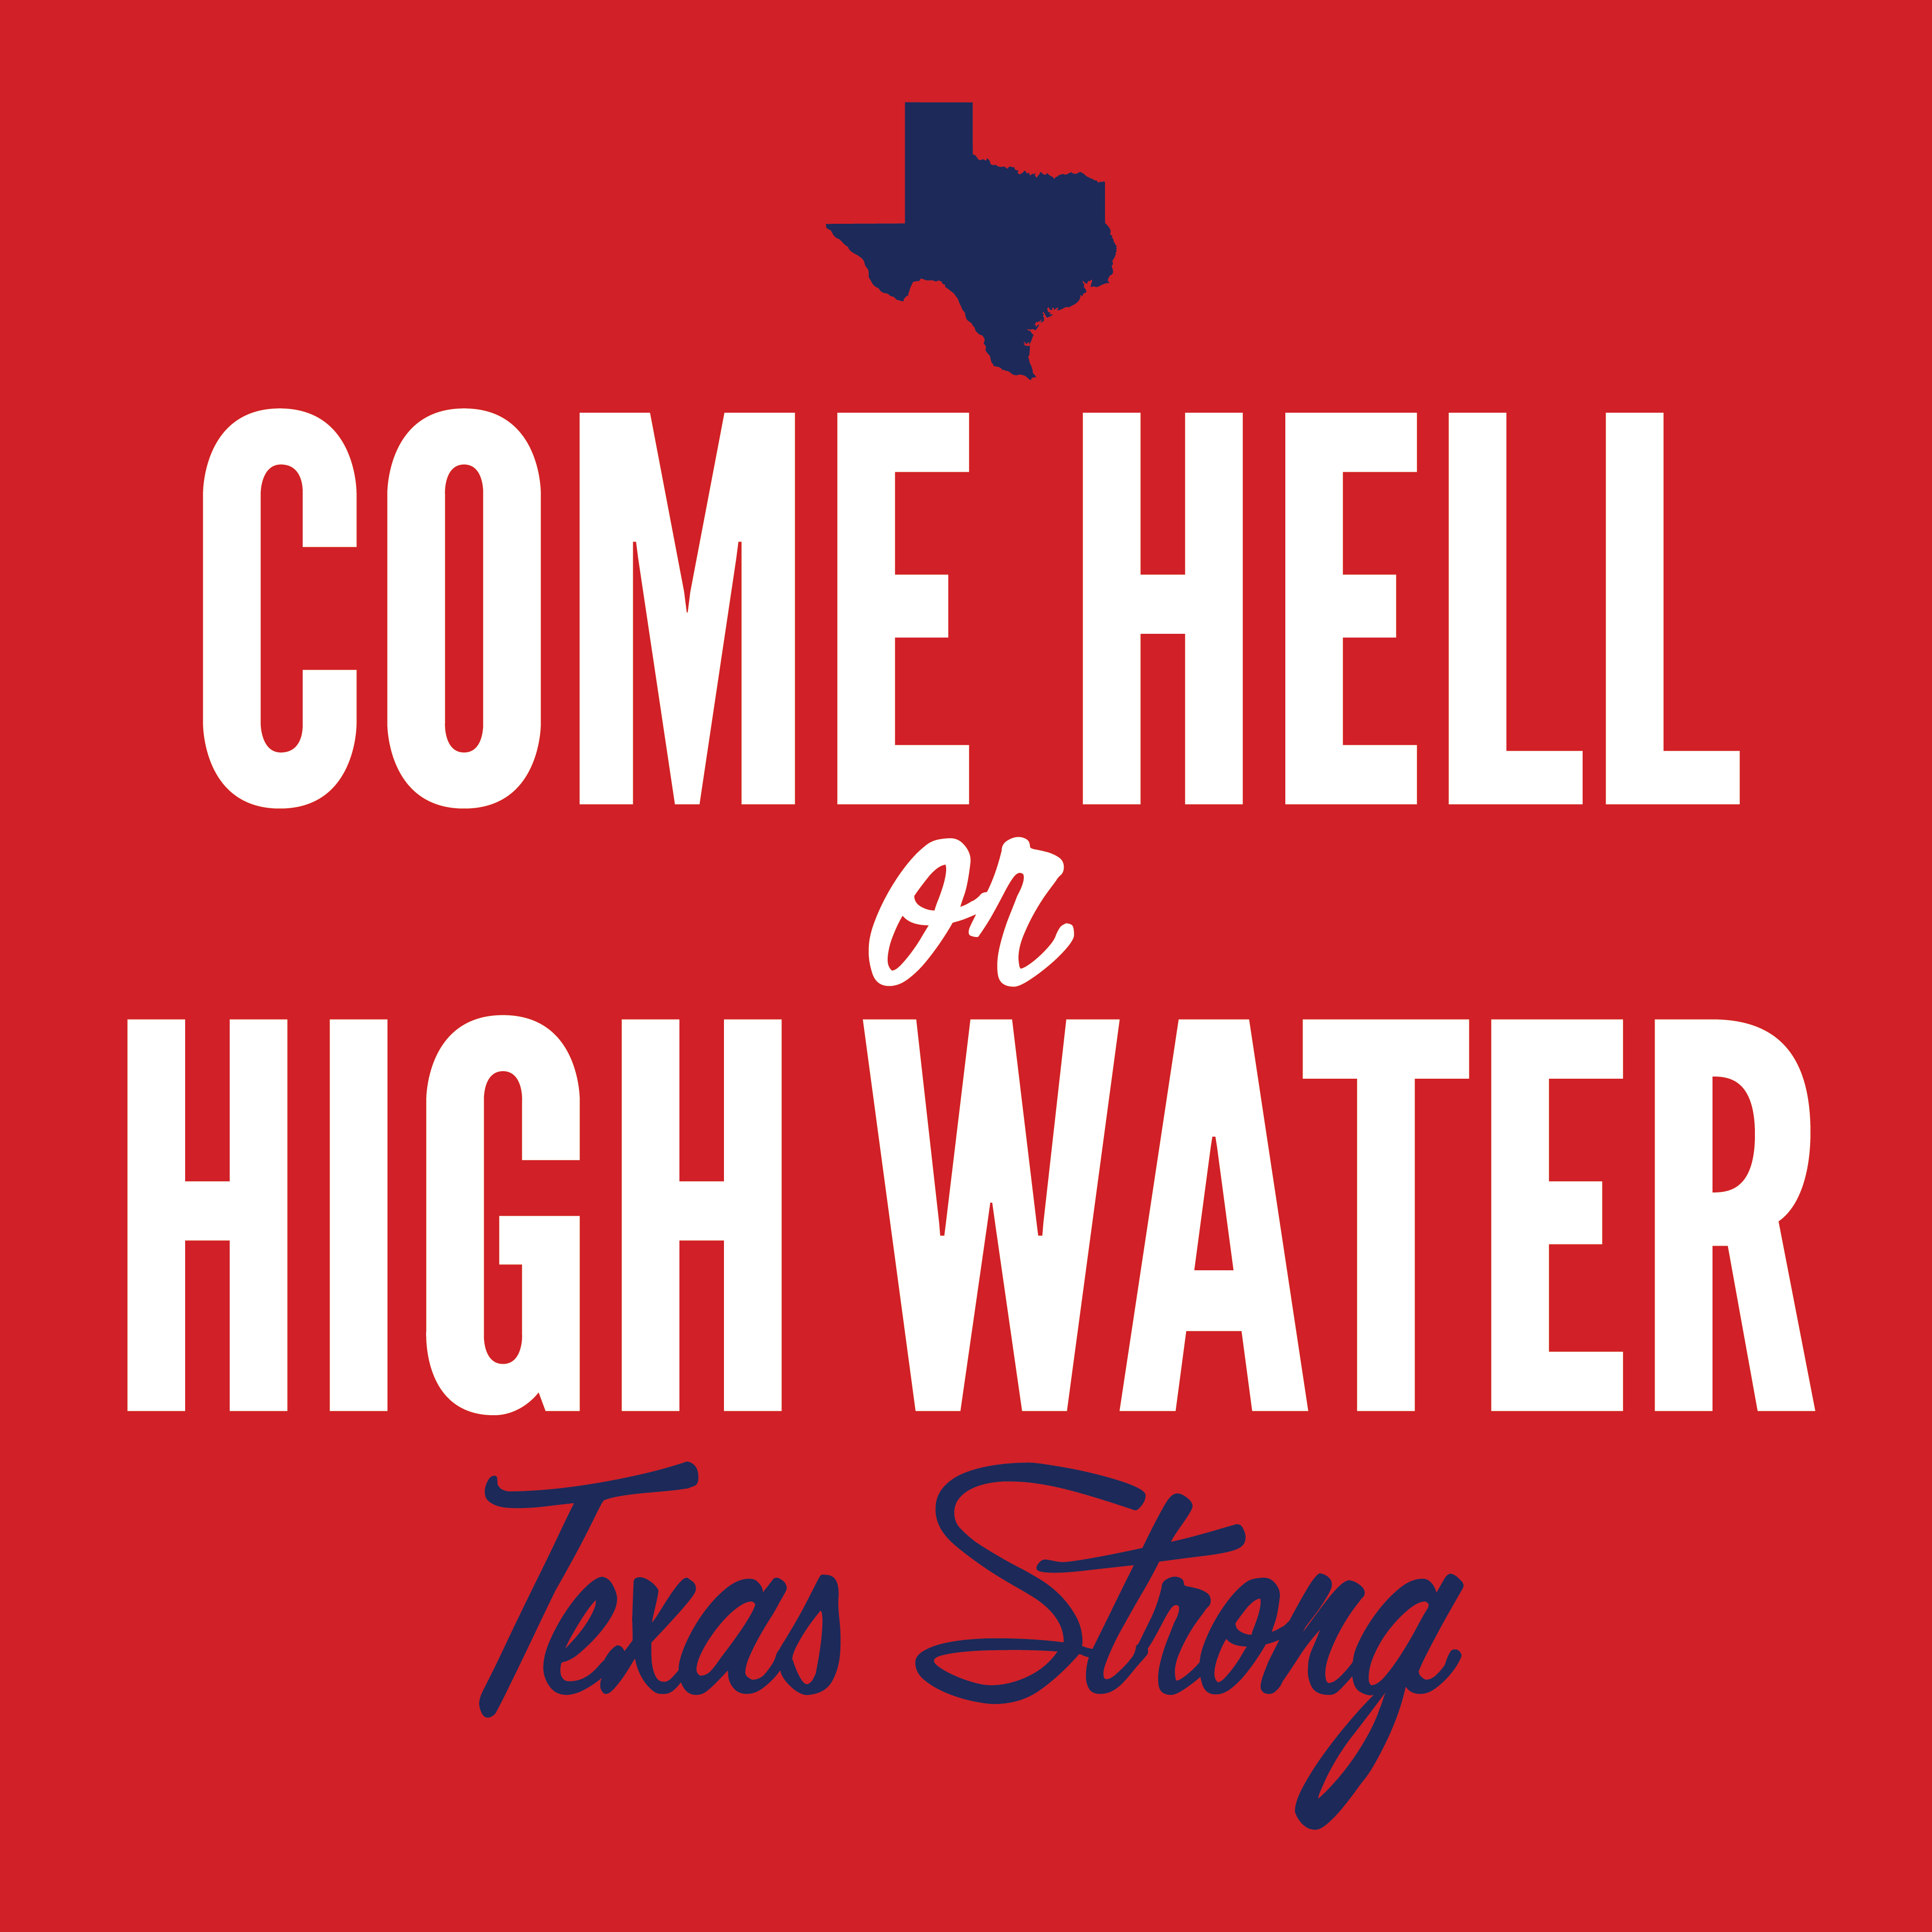 texas strong come hell or highwater